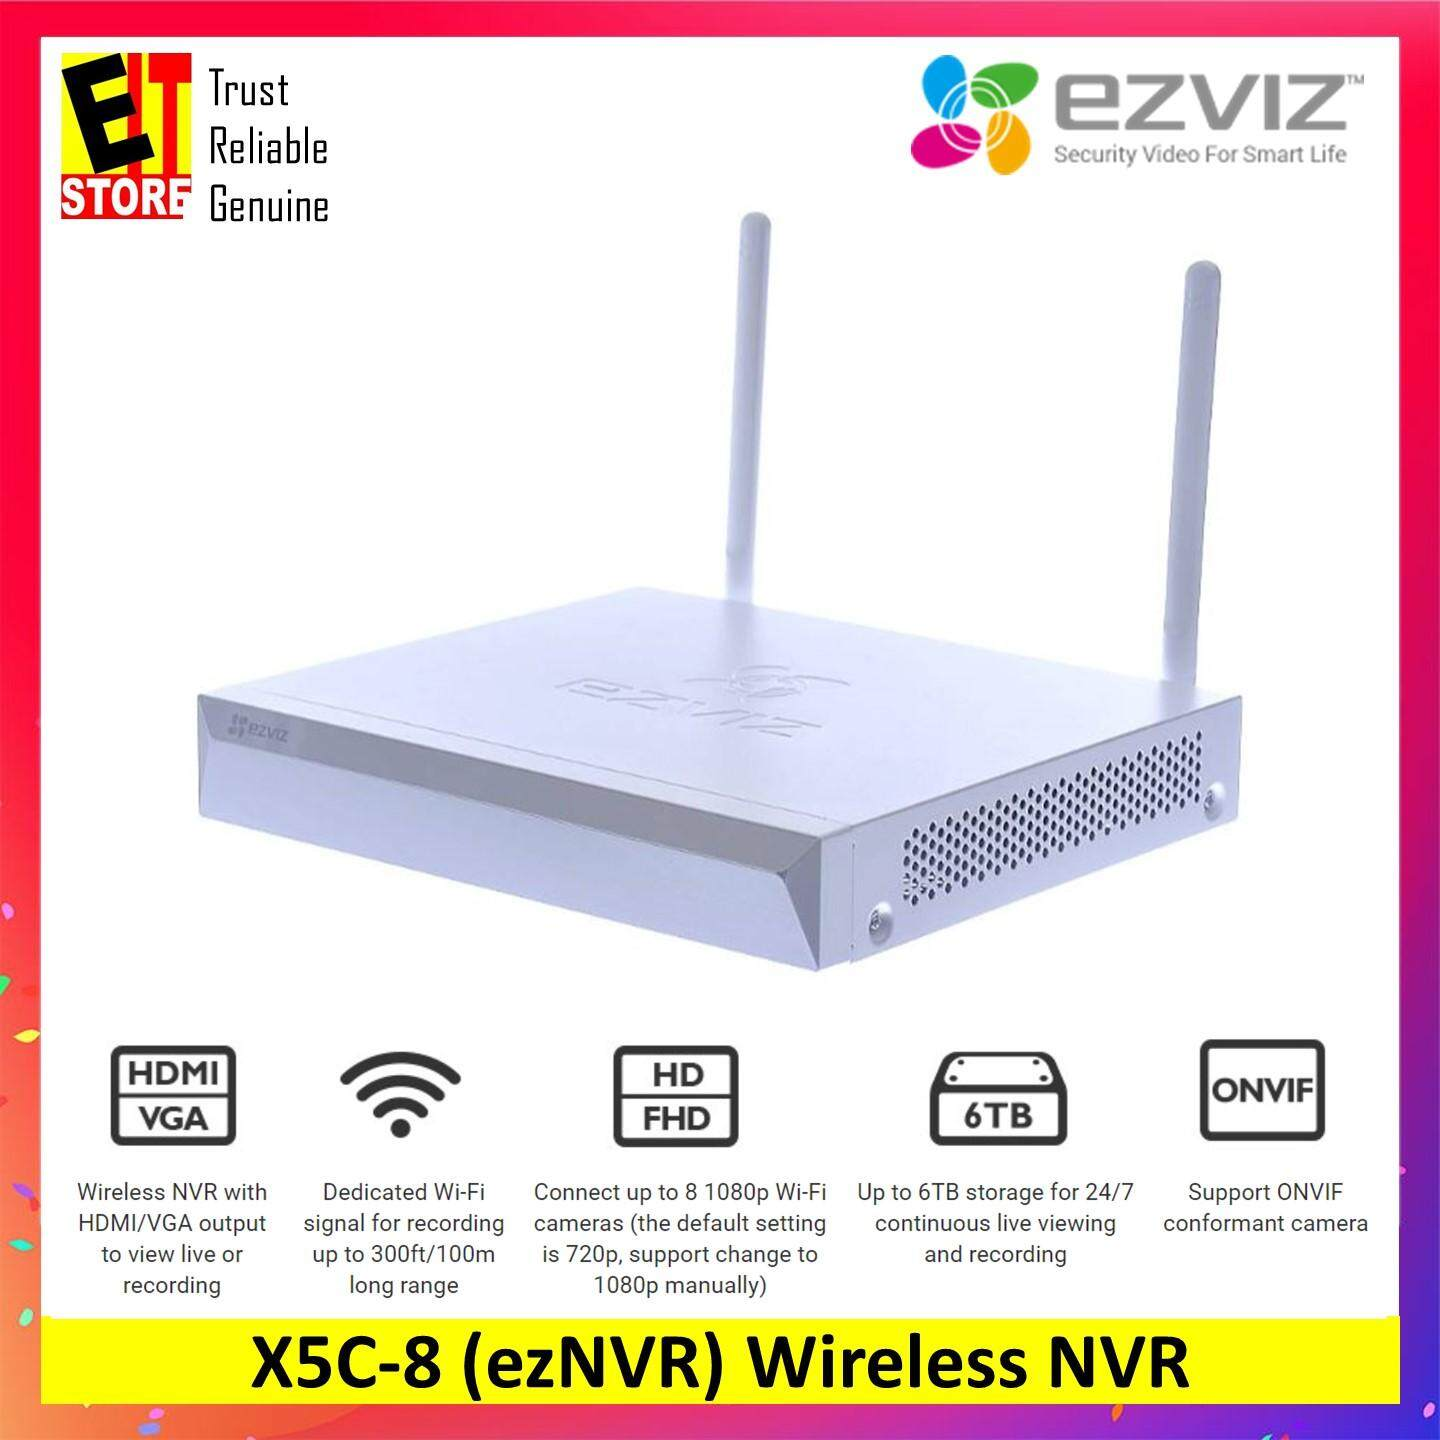 Ezviz Wireless Nvr With Hdmi/vga Output - Vault Live (8 Channel) - Cs-X5c-8 By Eit Store.